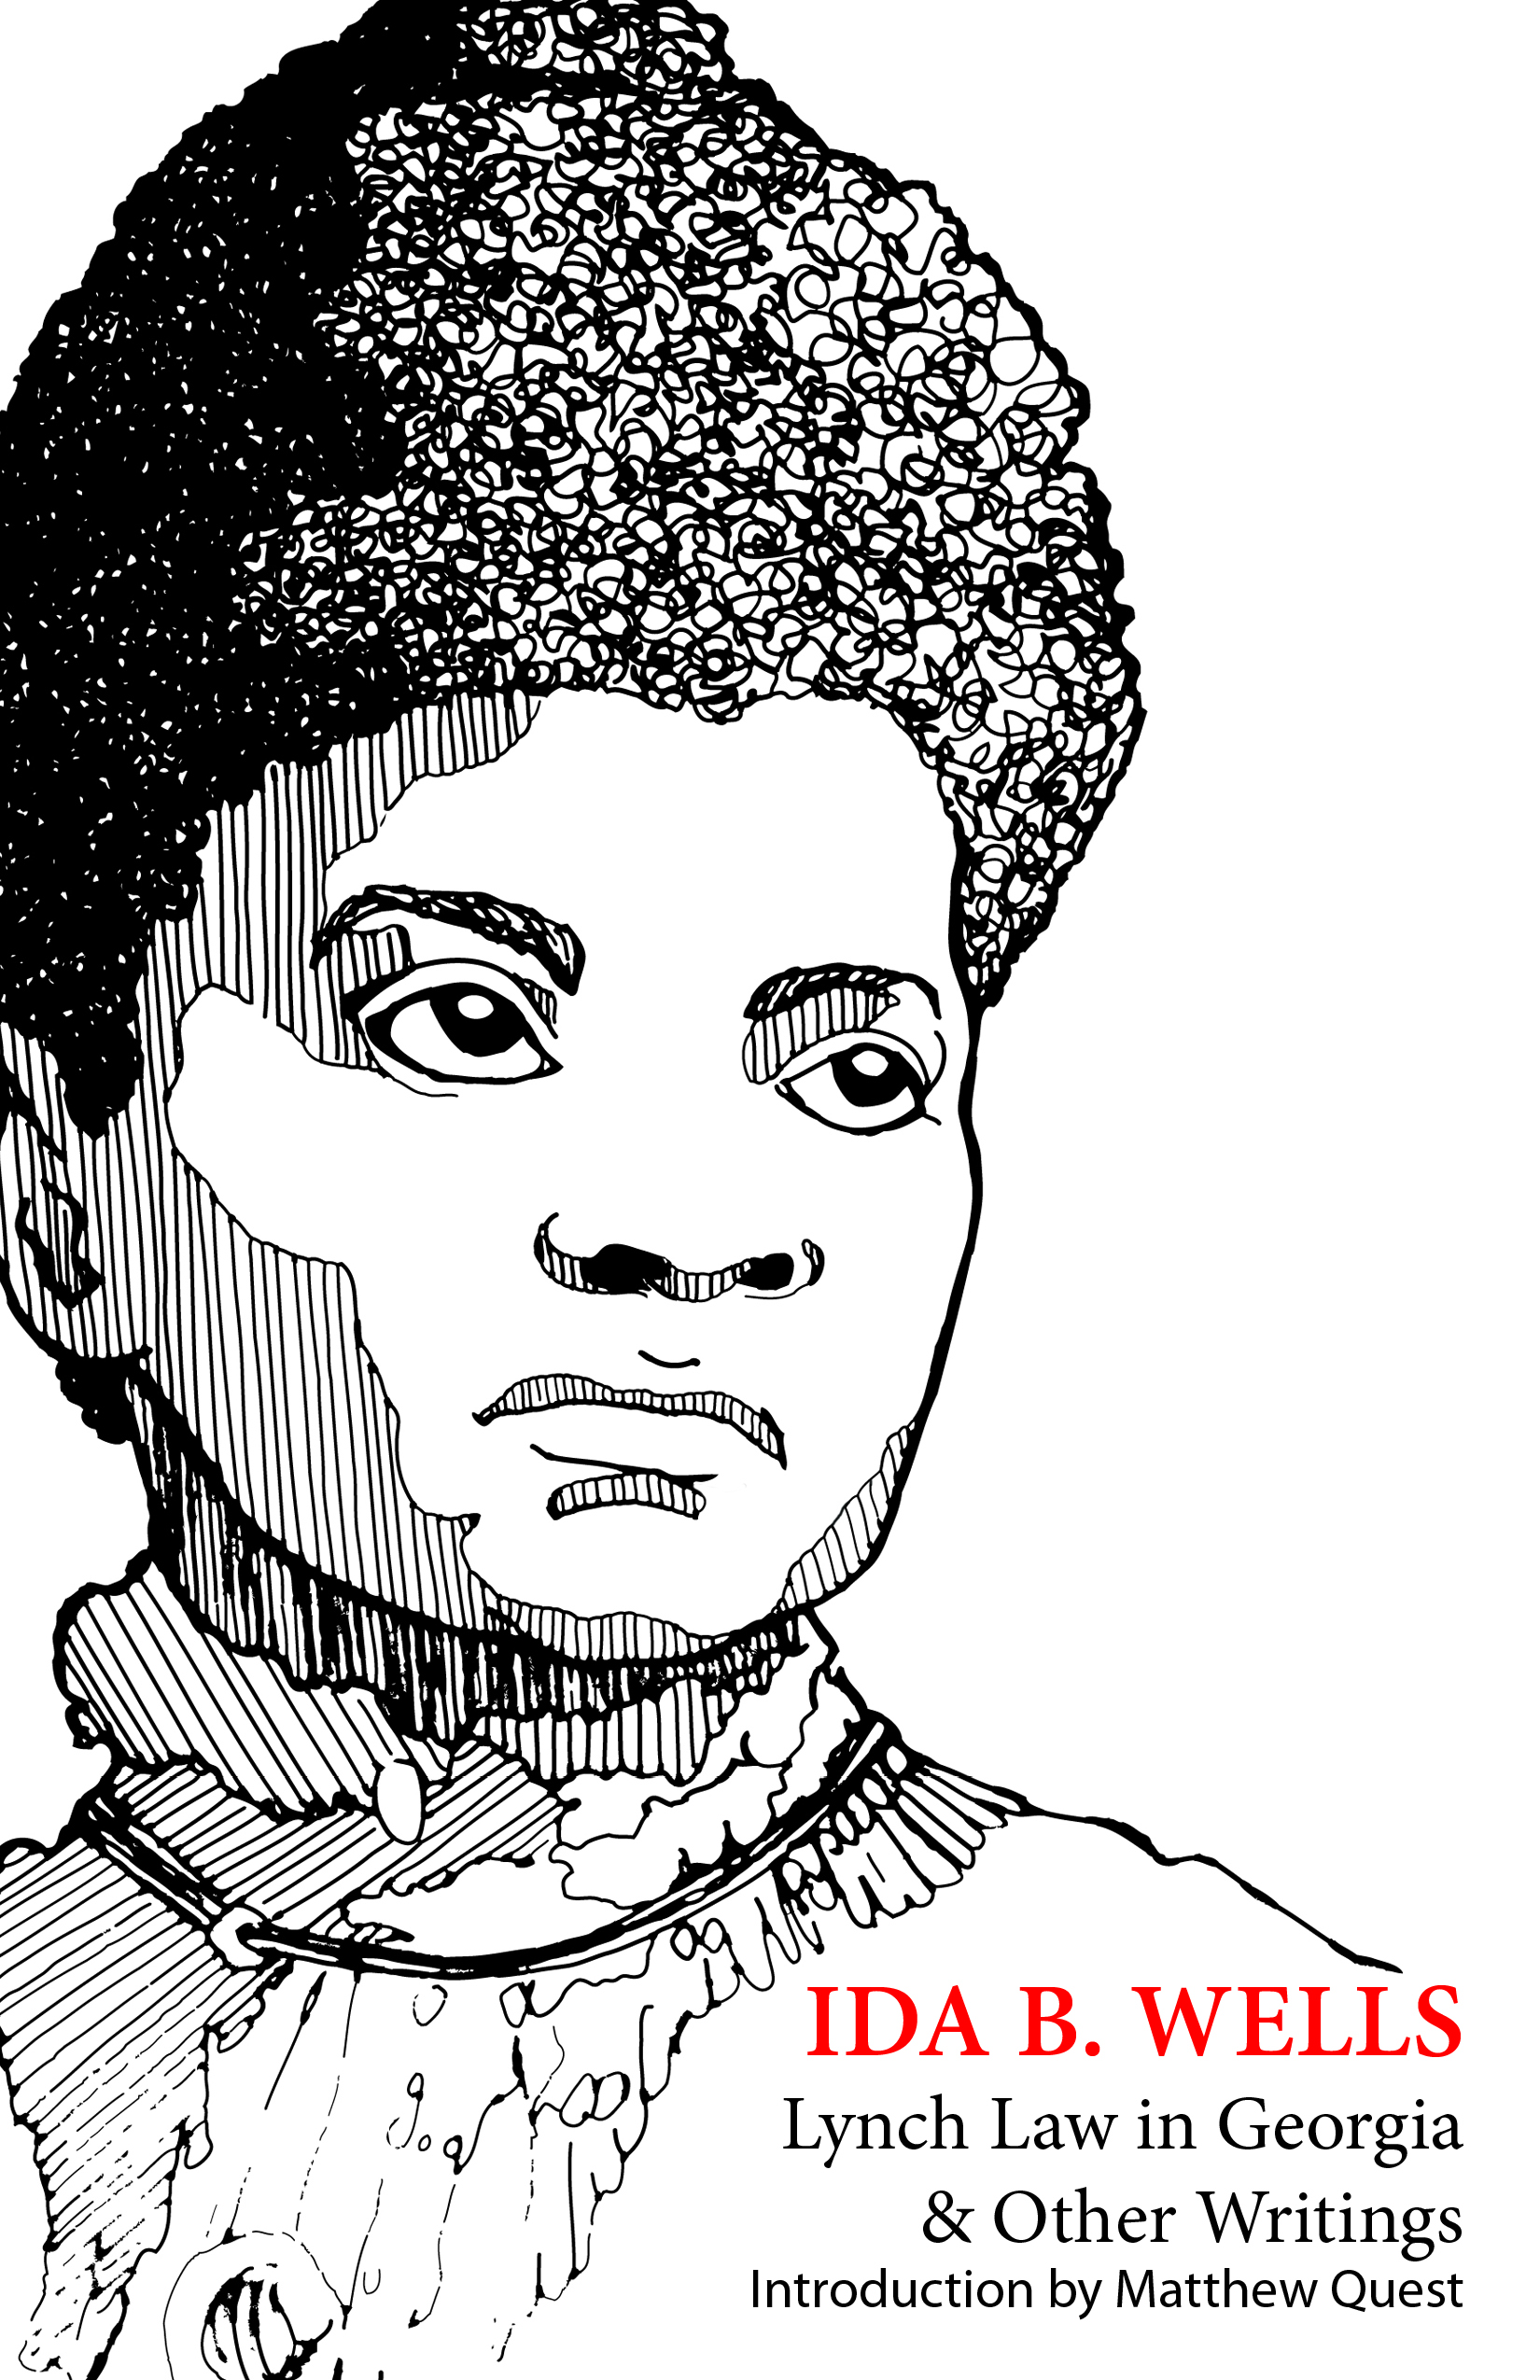 an introduction to the anti lynching campaign of ida b wells Free ida b wells papers she is famous for her campaign against lynching ida set an example for the anti-lynching movement was established—a campaign in.